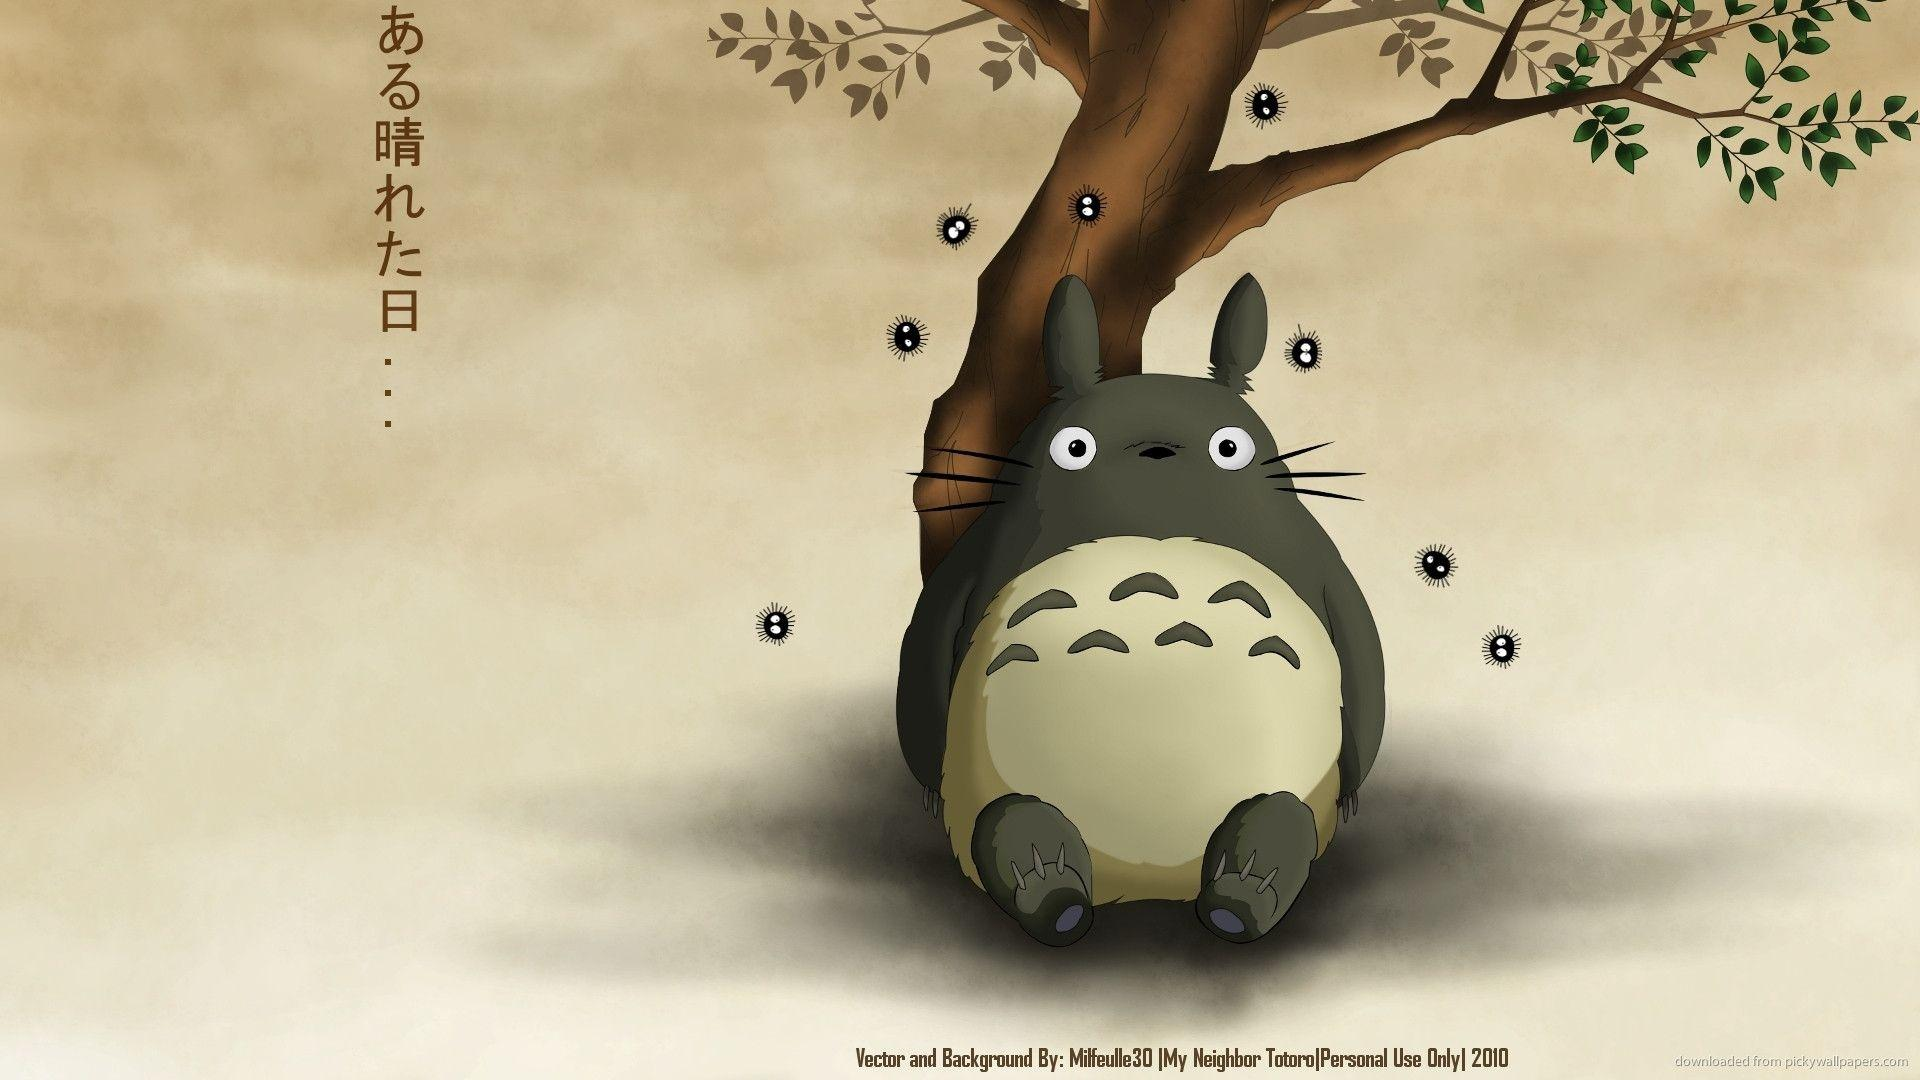 My Neighbor Totoro Under The Tree Wallpaper For IPhone 4